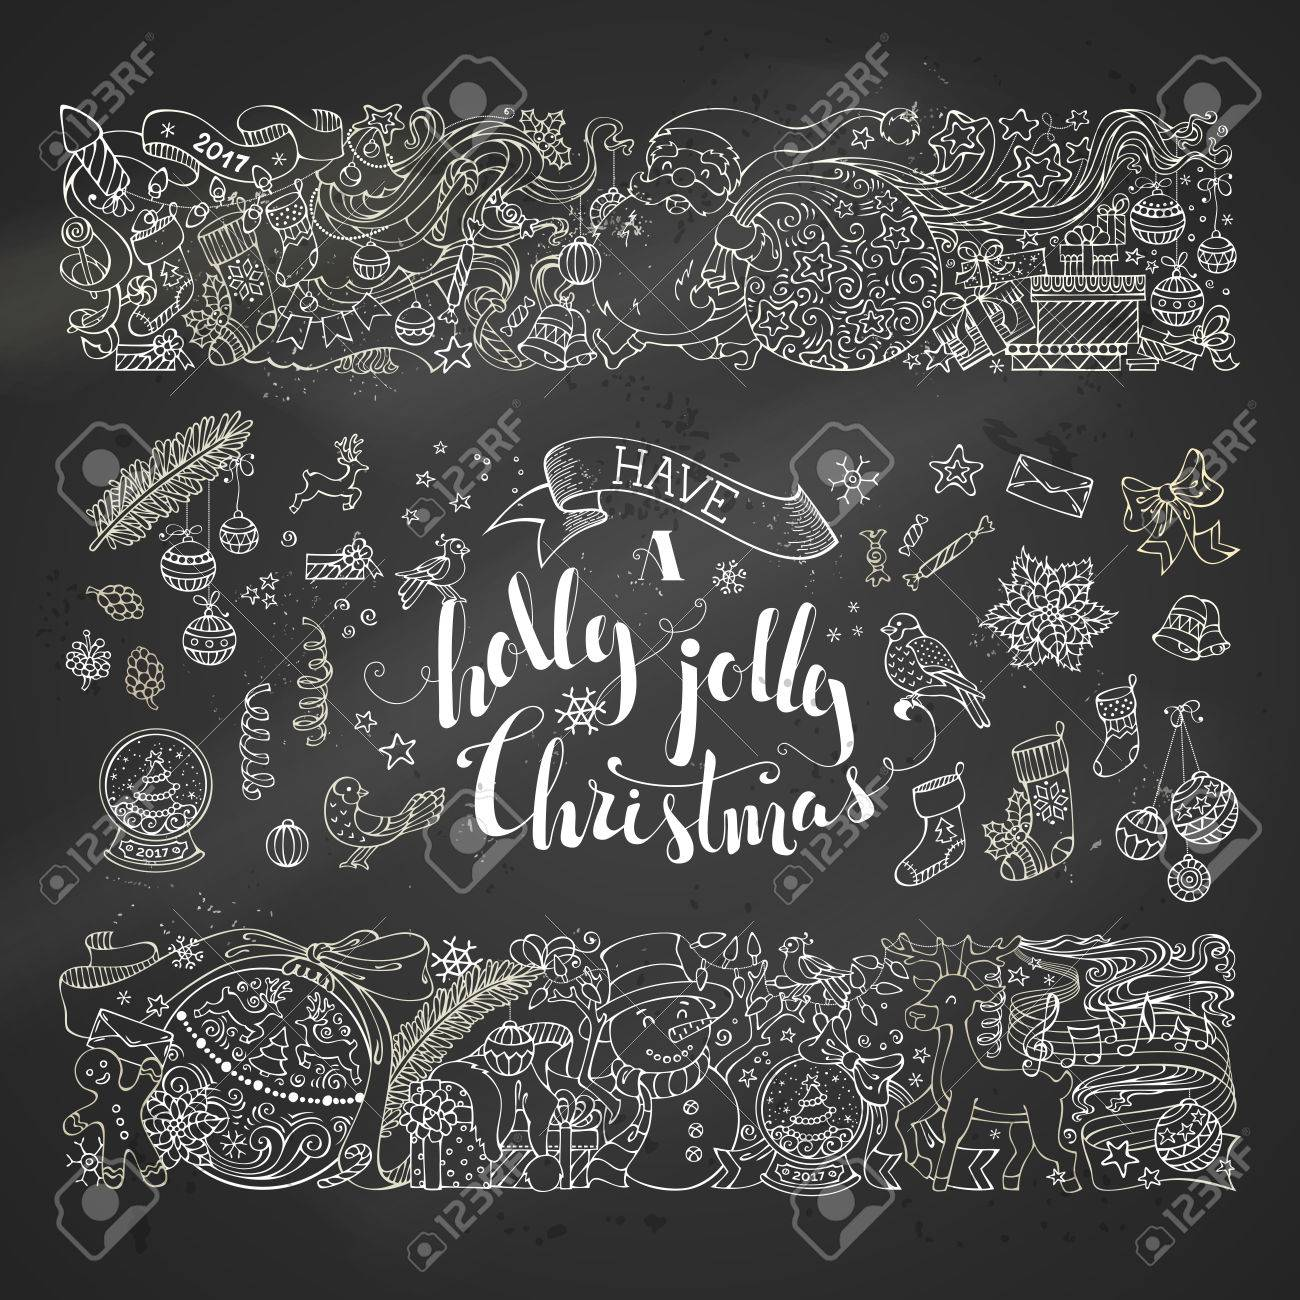 Chalk Merry Christmas Decorations And Design Elements On Blackboard